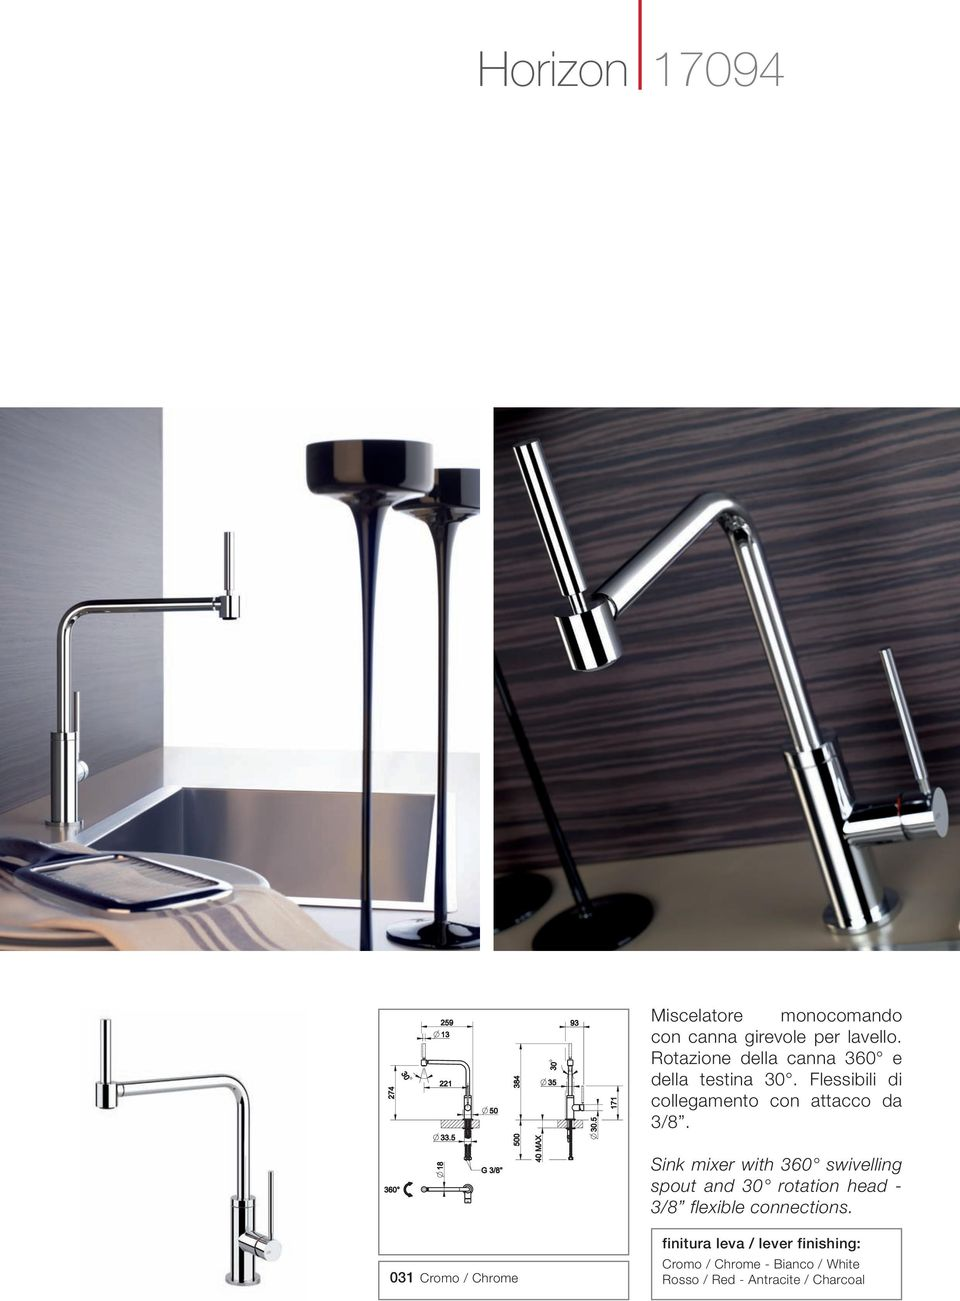 Sink mixer with 360 swivelling spout and 30 rotation head - 3/8 flexible connections.